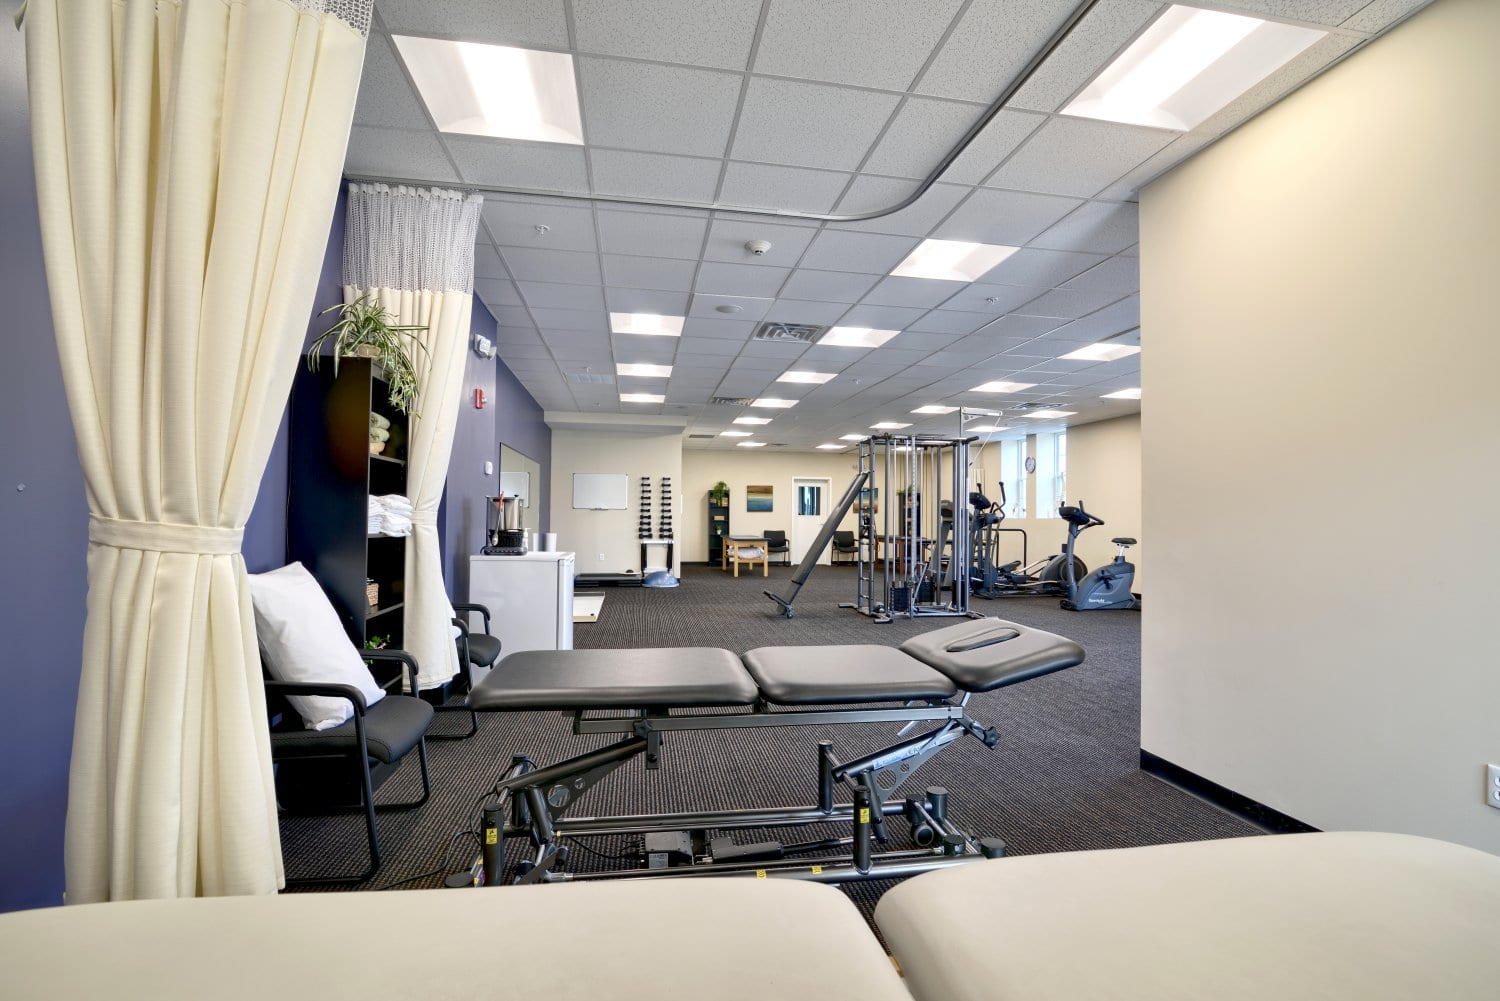 Here is a photo of the stretch beds used for physical therapy at our clinic in Waltham, Massachusetts.